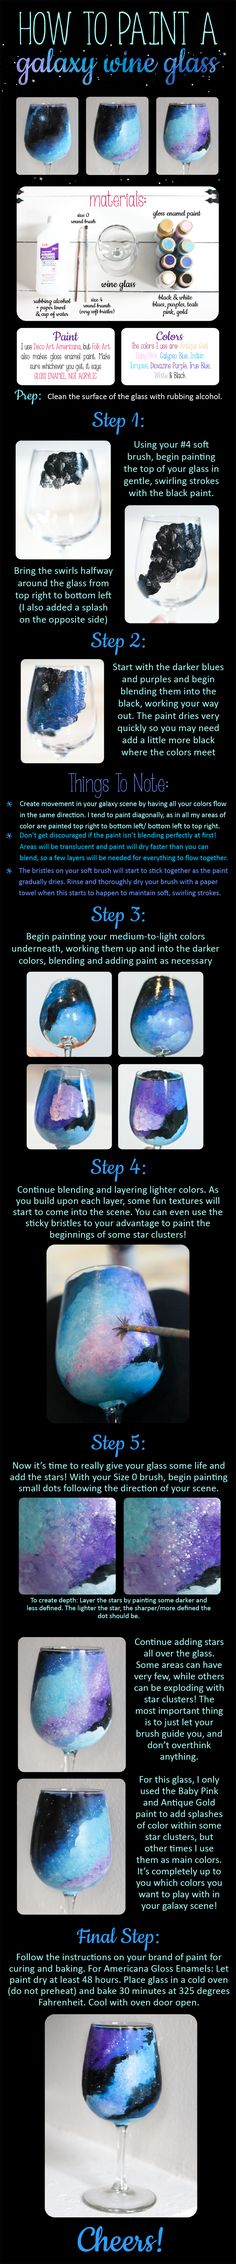 DIY Tutorial: How To Paint a Galaxy Scene Wine Glass! To purchase the glass featured in this tutorial, visit JocelynArielle on Etsy!